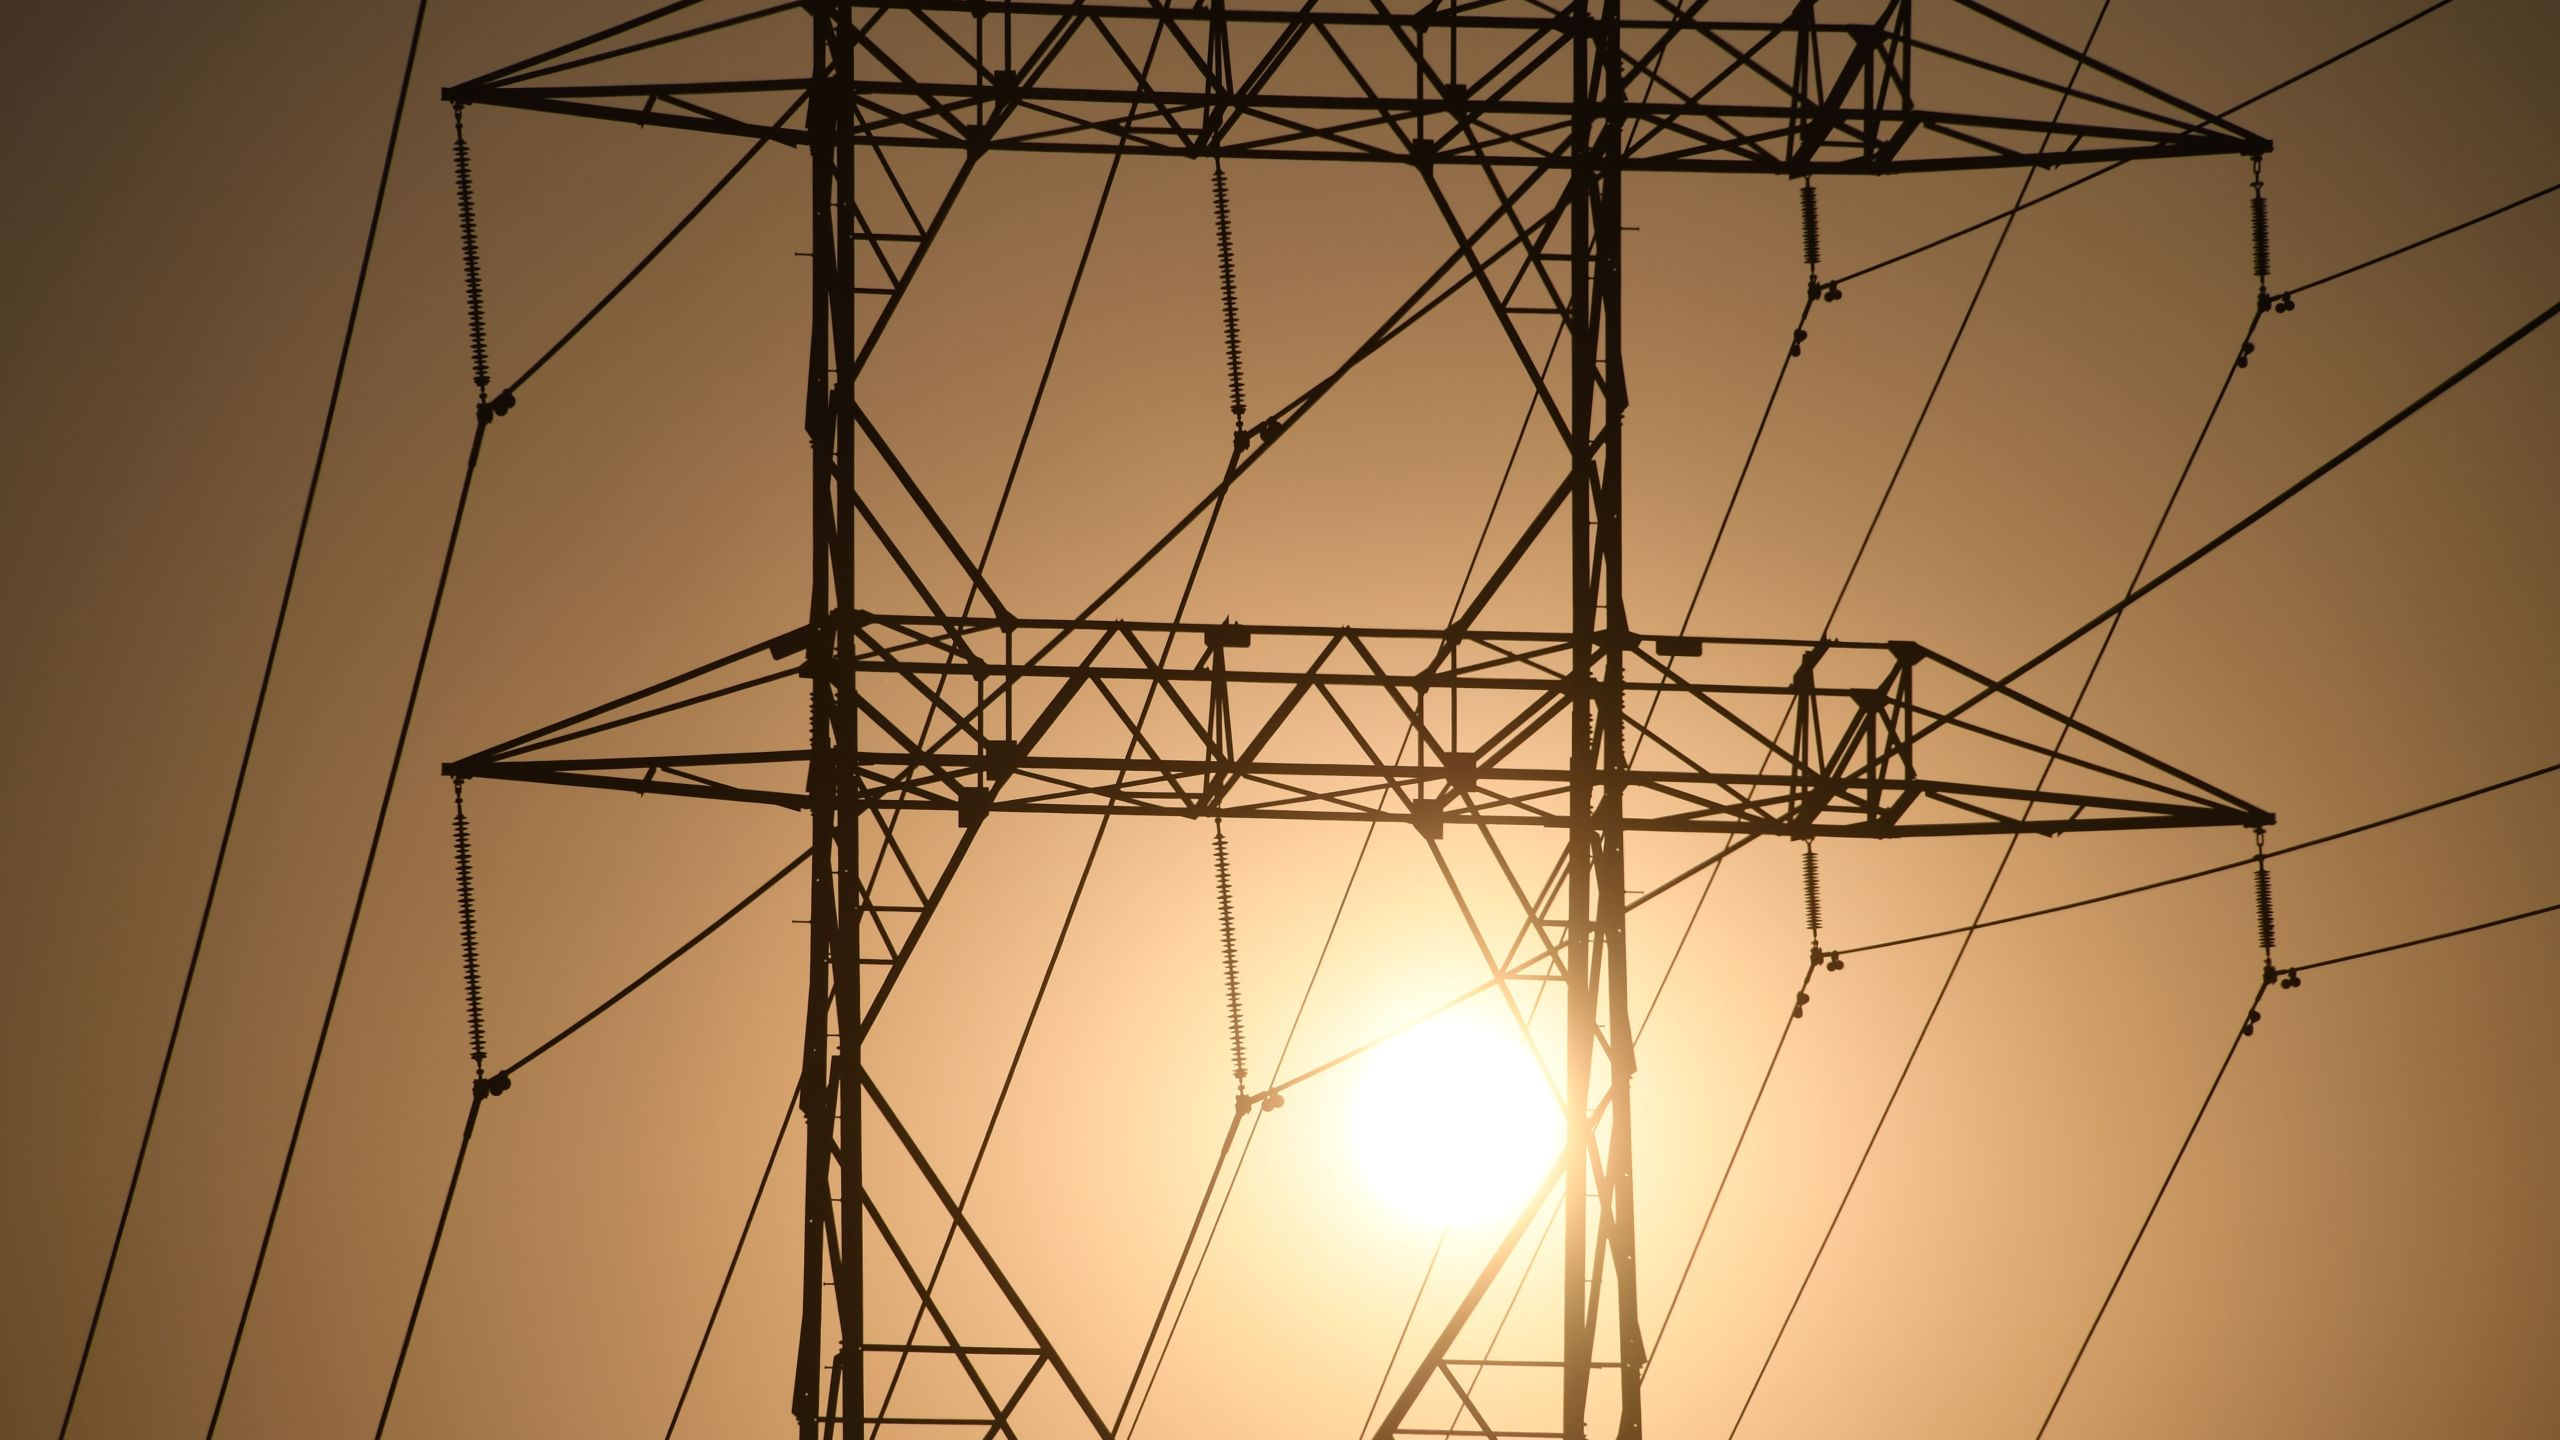 Electrical power line towers are seen in Los Angeles, Aug. 19, 2020, during a triple-digit heatwave gripping the area. (ROBYN BECK/AFP via Getty Images)